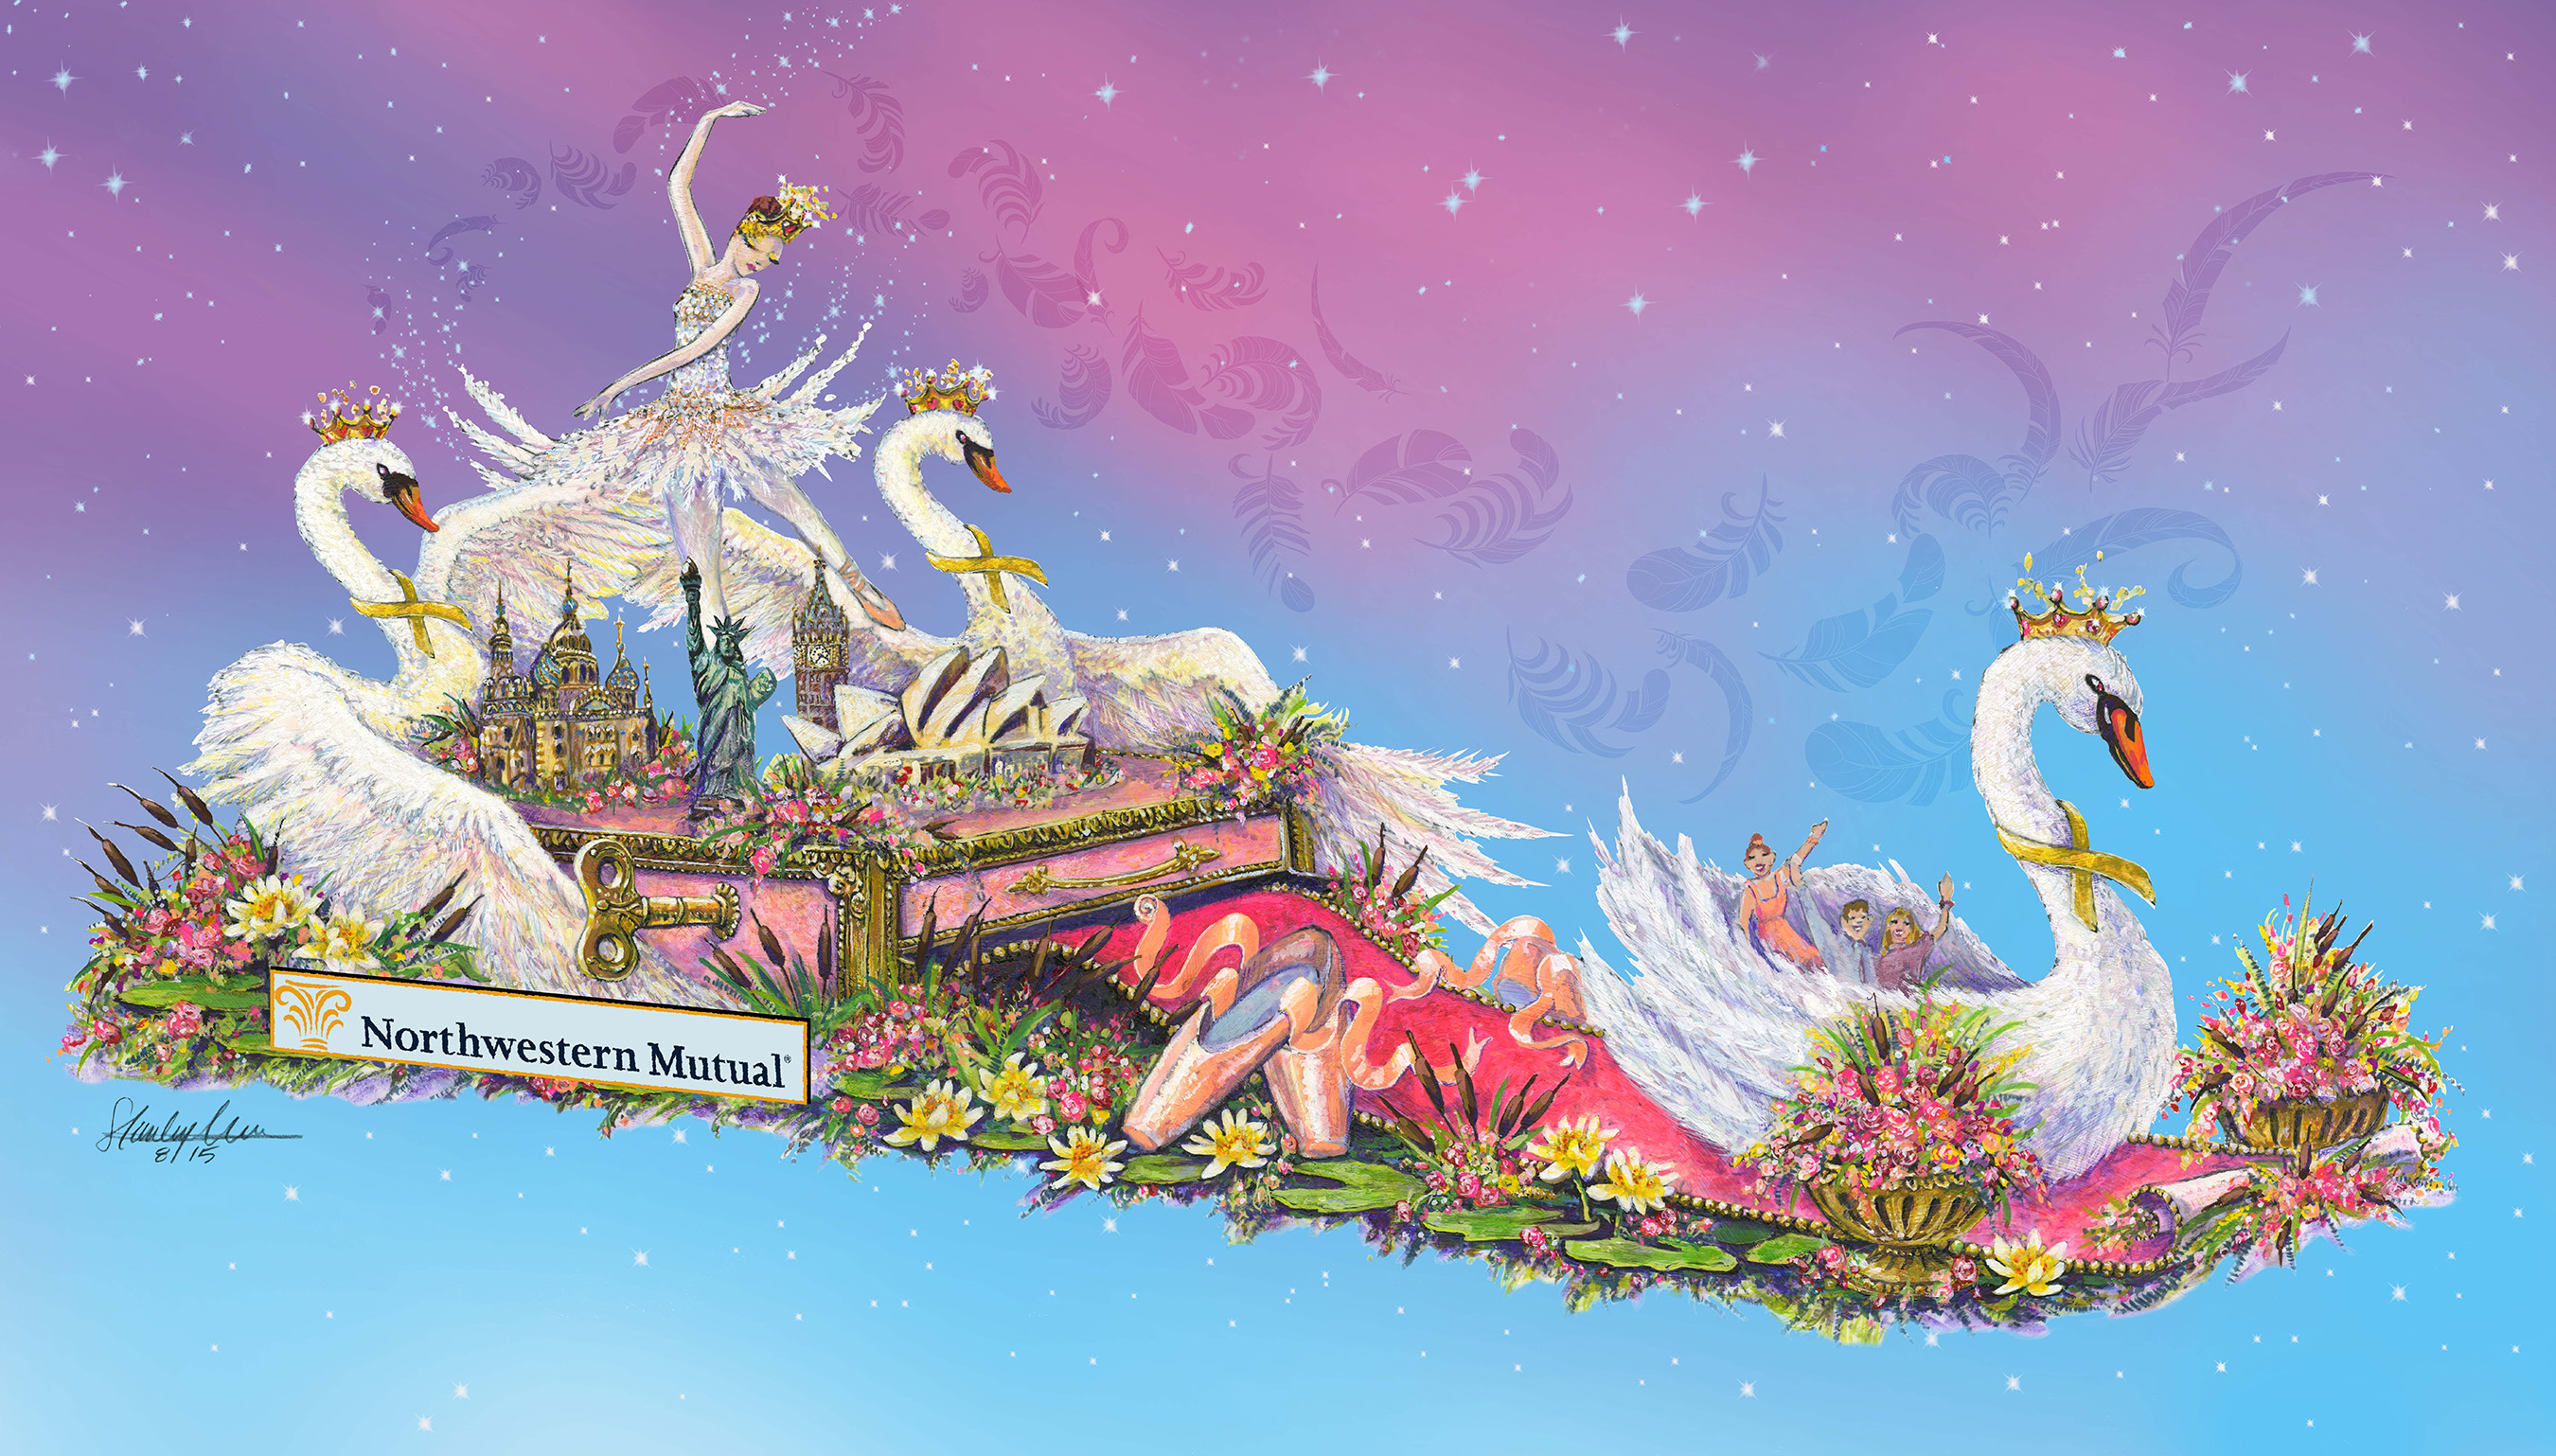 "Northwestern Mutual ""Dancing Into Adventure"" at 2016 Tournament of Roses® Parade"